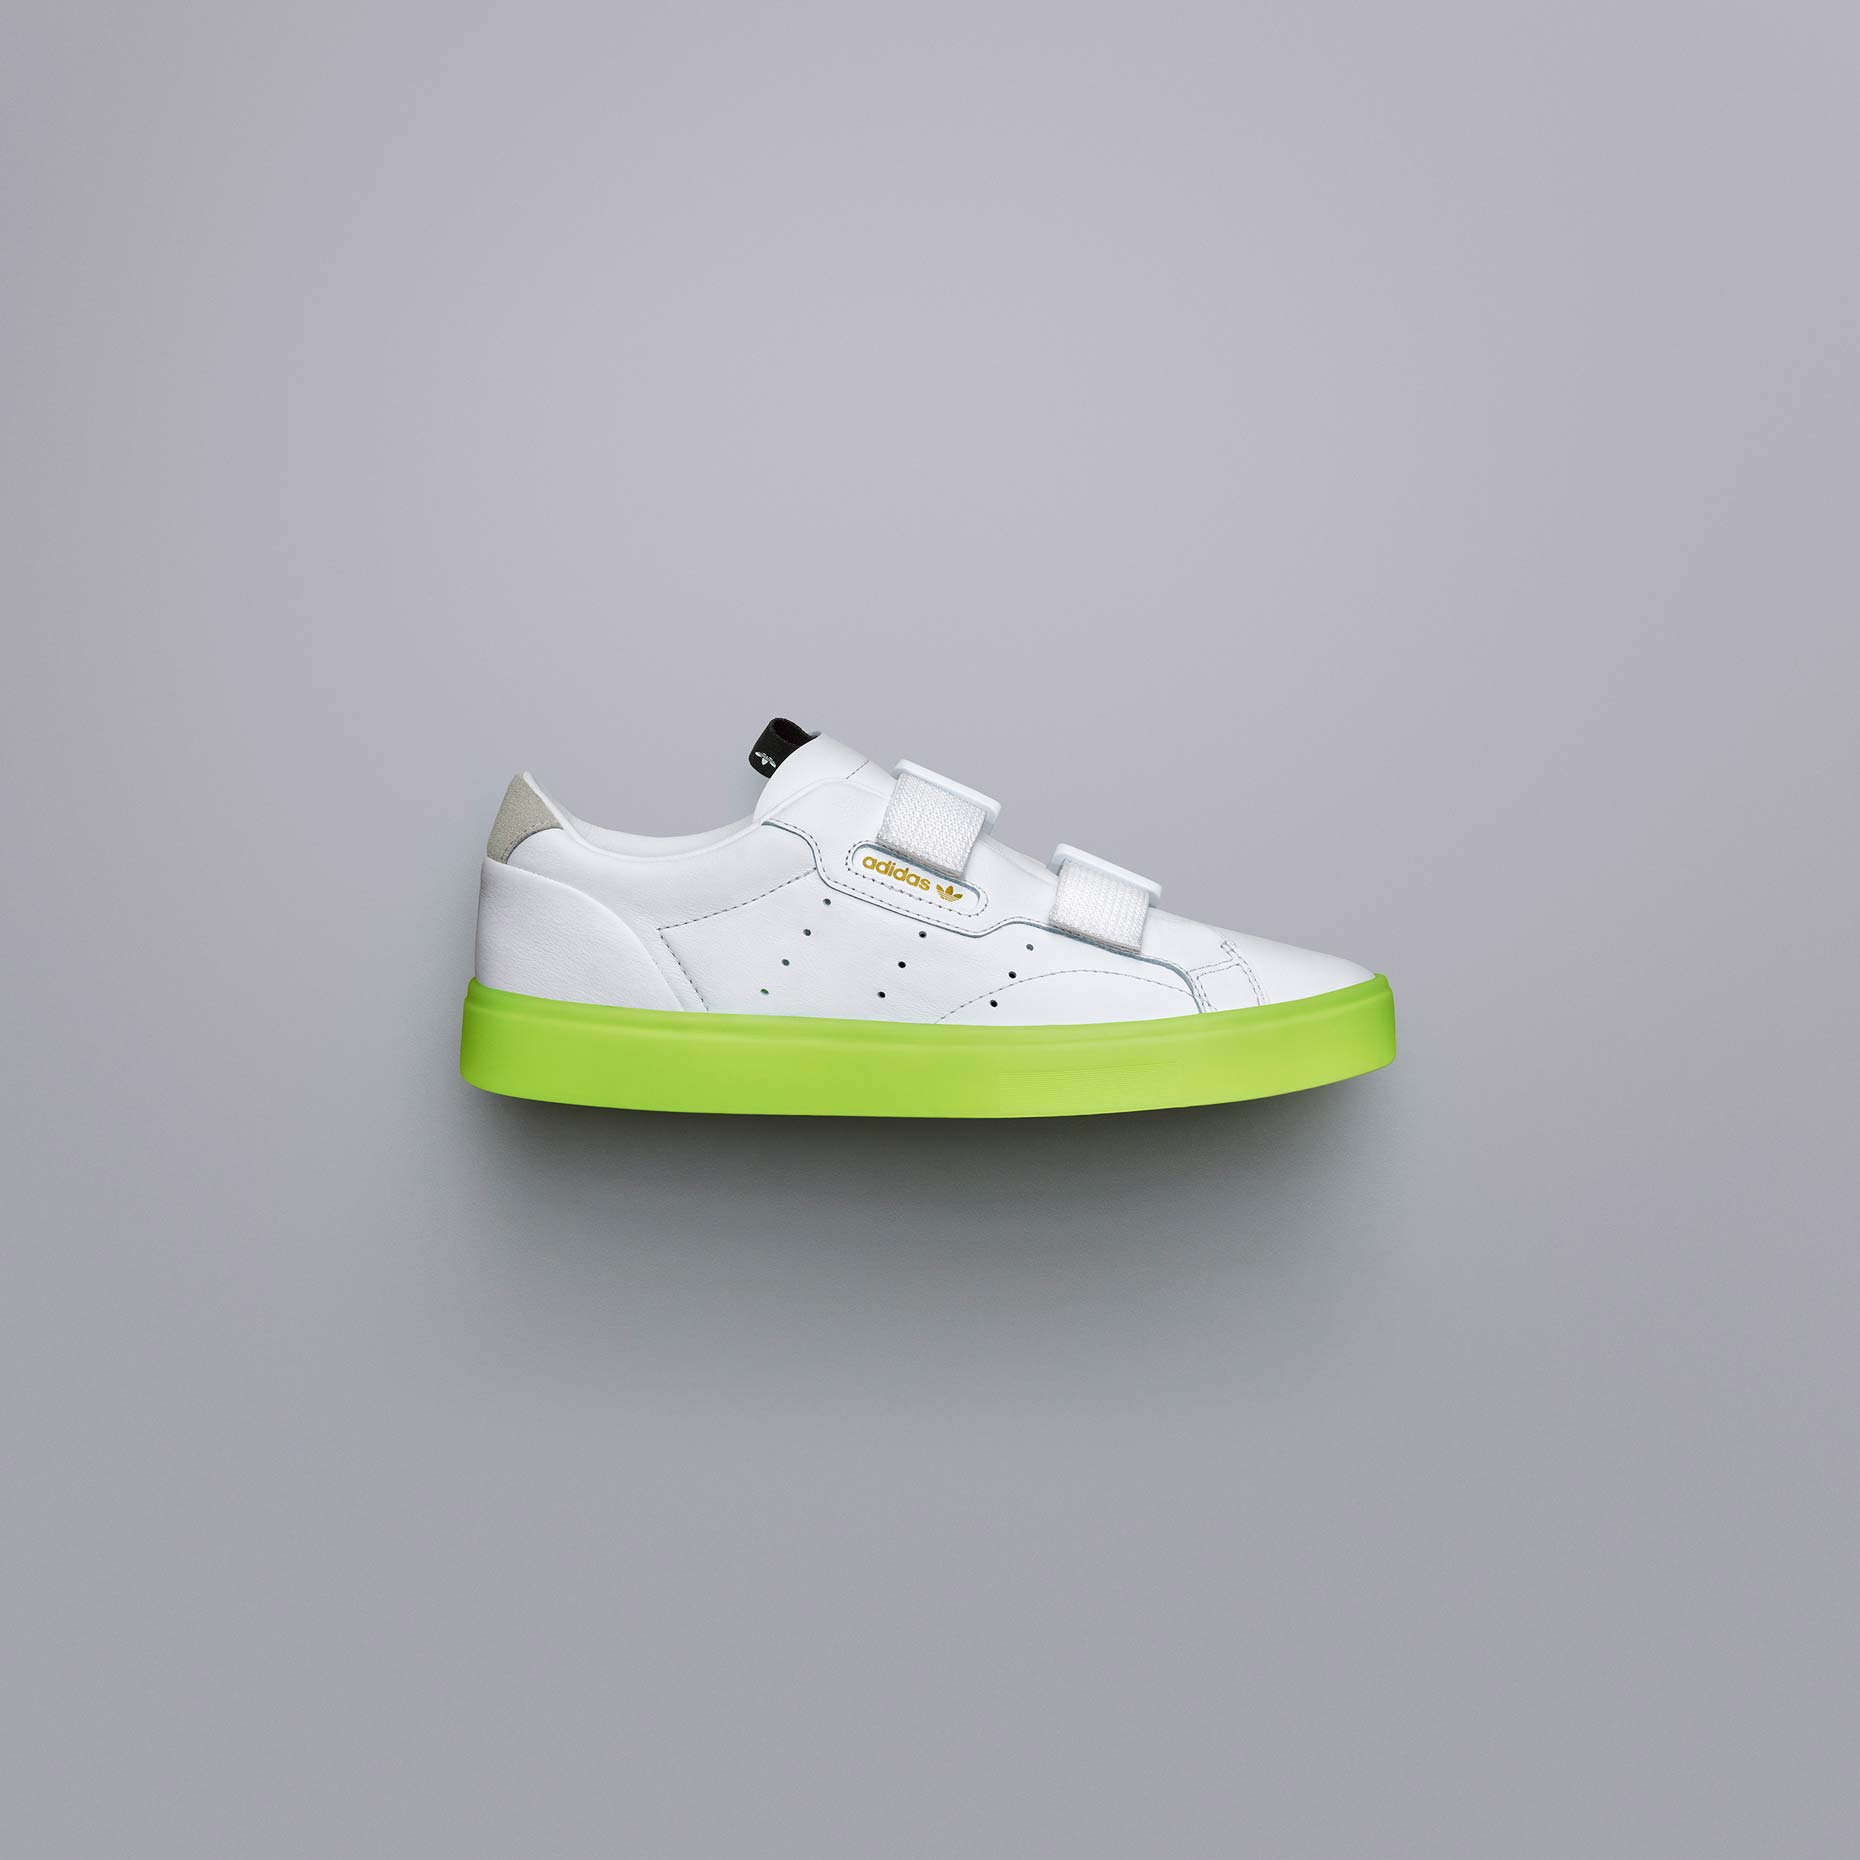 adidasOriginals_SS19_Sleek_SleekSW_EE8279_01_Angle_COMP_c